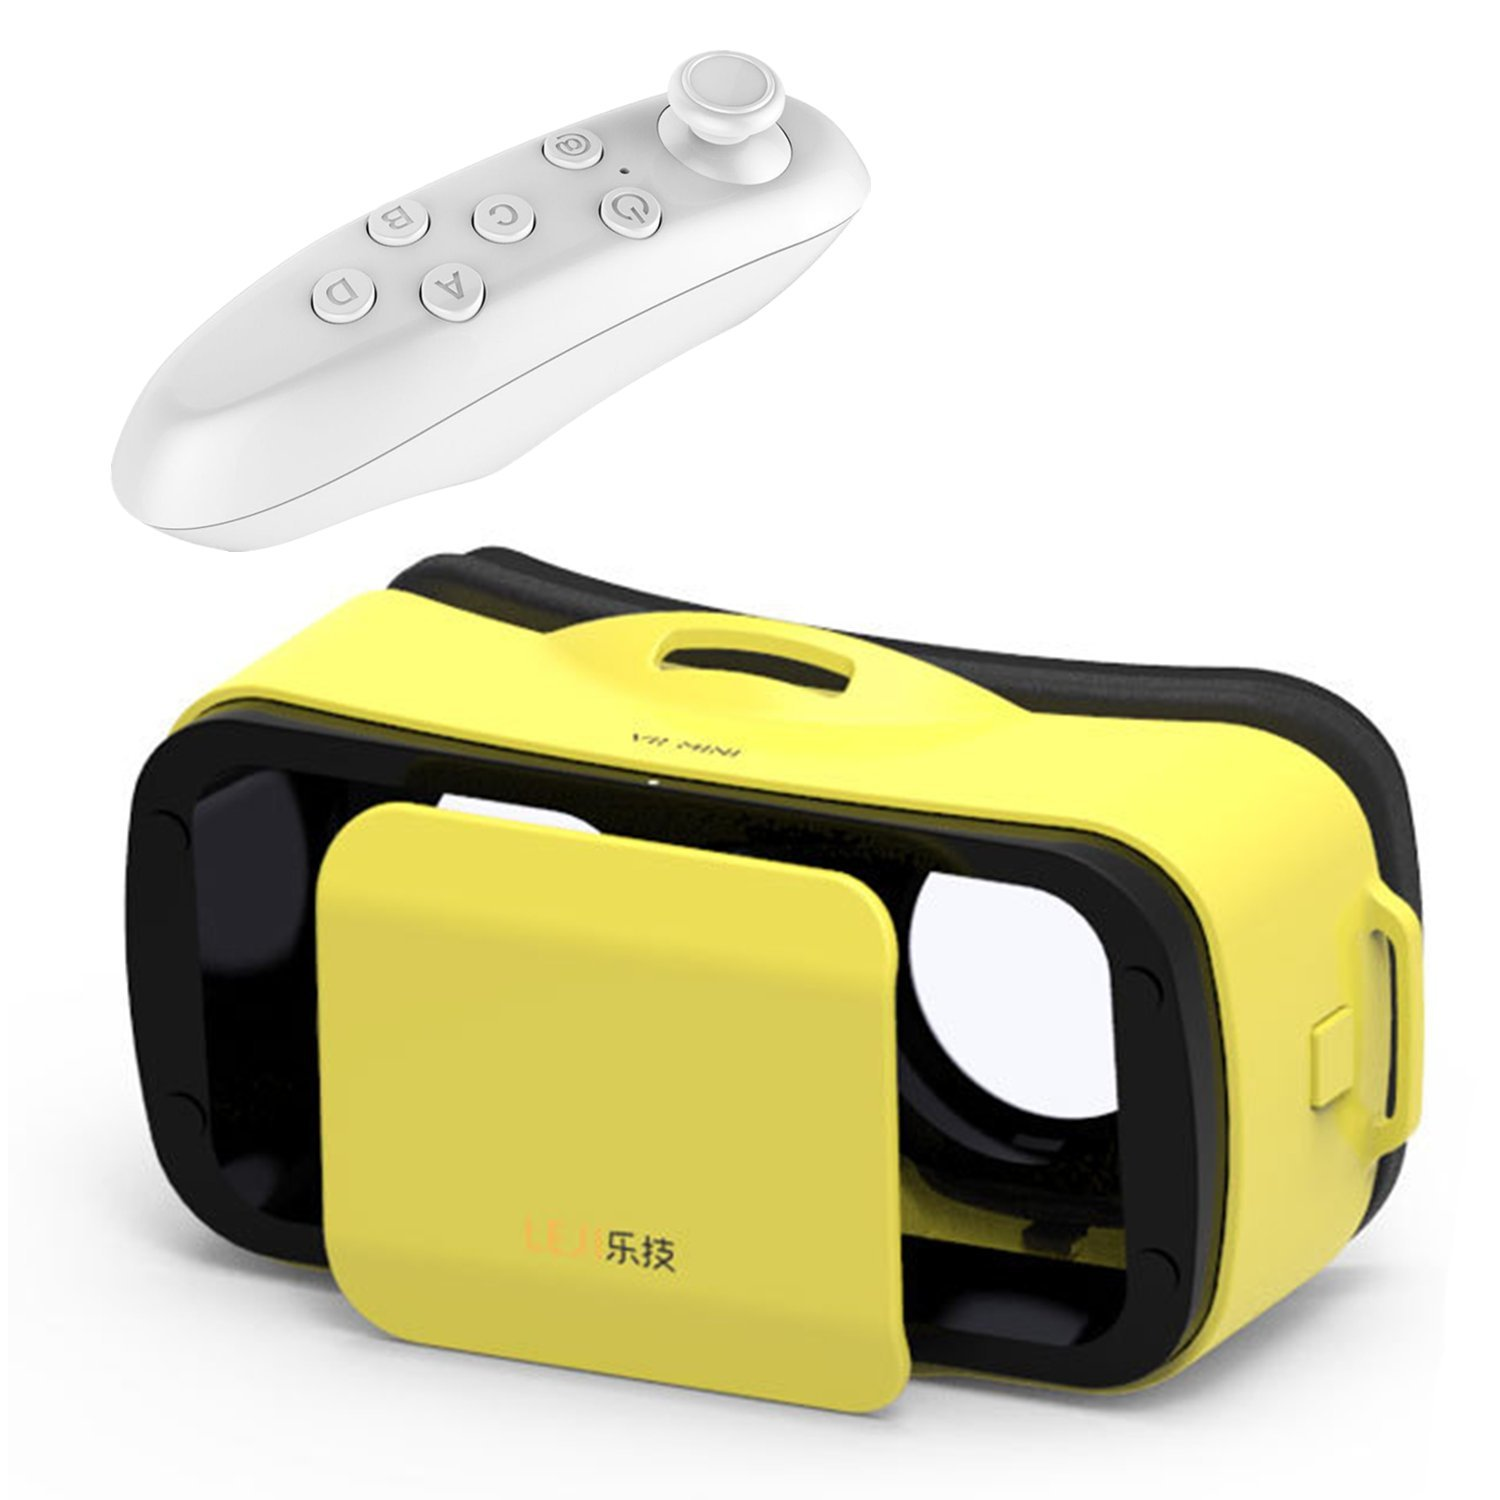 "Mini 3D VR Glasses/Headset, Tsanglight Virtual Reality Headset + Remote Controller for IOS iPhone 7/6/6S Plus, Android Samsung Galaxy S7 Edge S7/6 /J7/A5/A3 2016 & Other 4.5""-5.5"" Cellphone-Yellow"